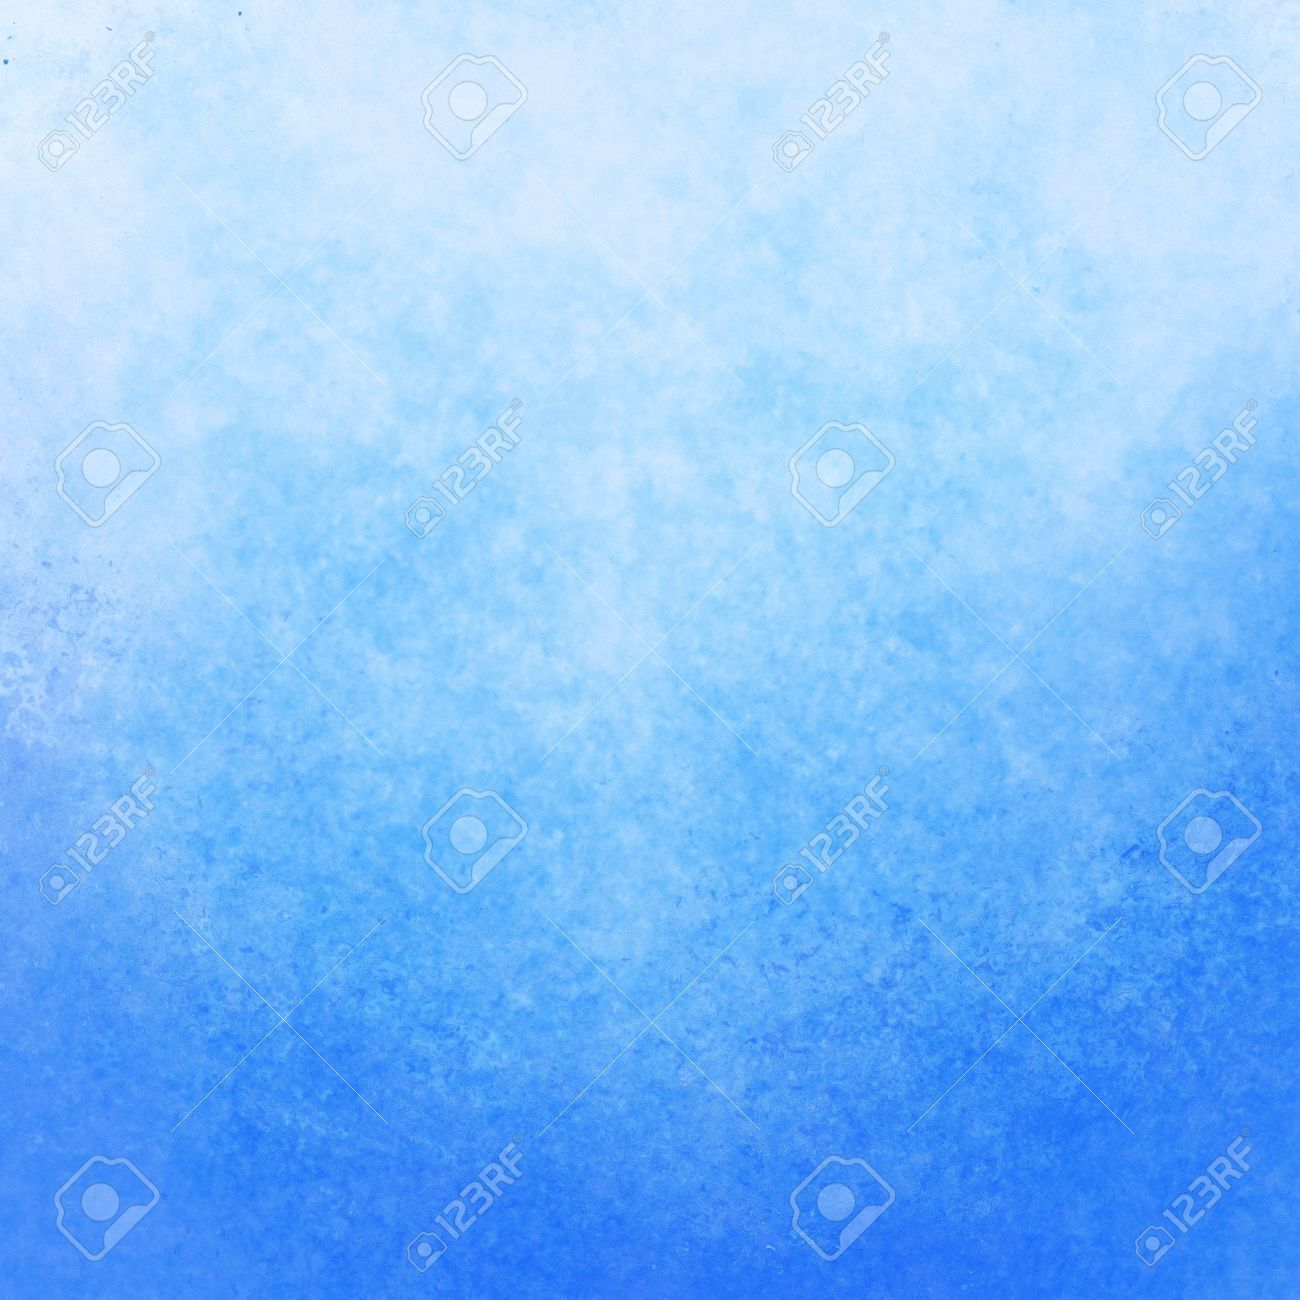 Classy Light Blue Background With Pastel Top Border And Gradient